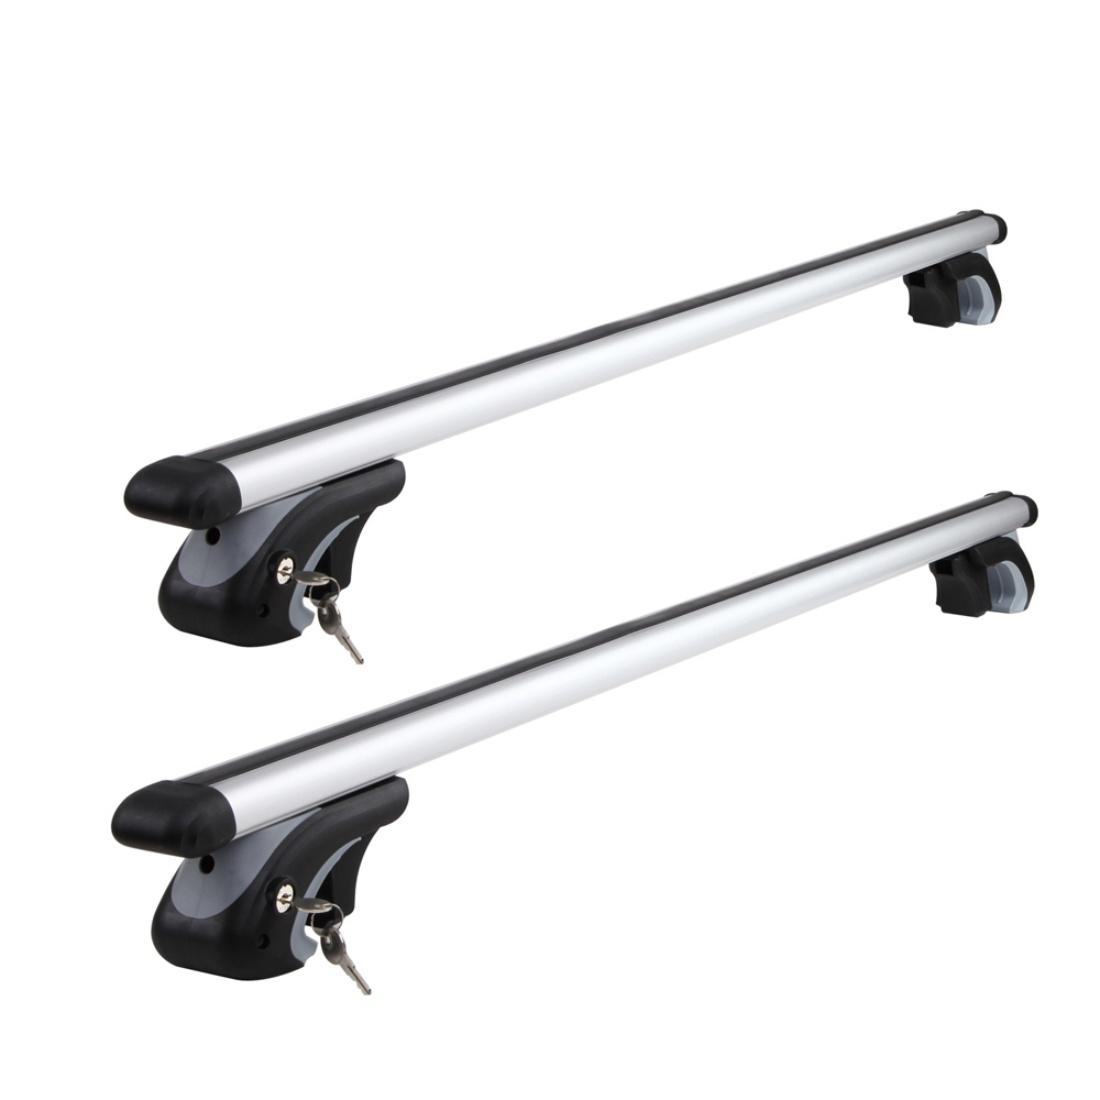 Volvo XC90 04-12 Roof Racks Cross Bars 120cm Lockable